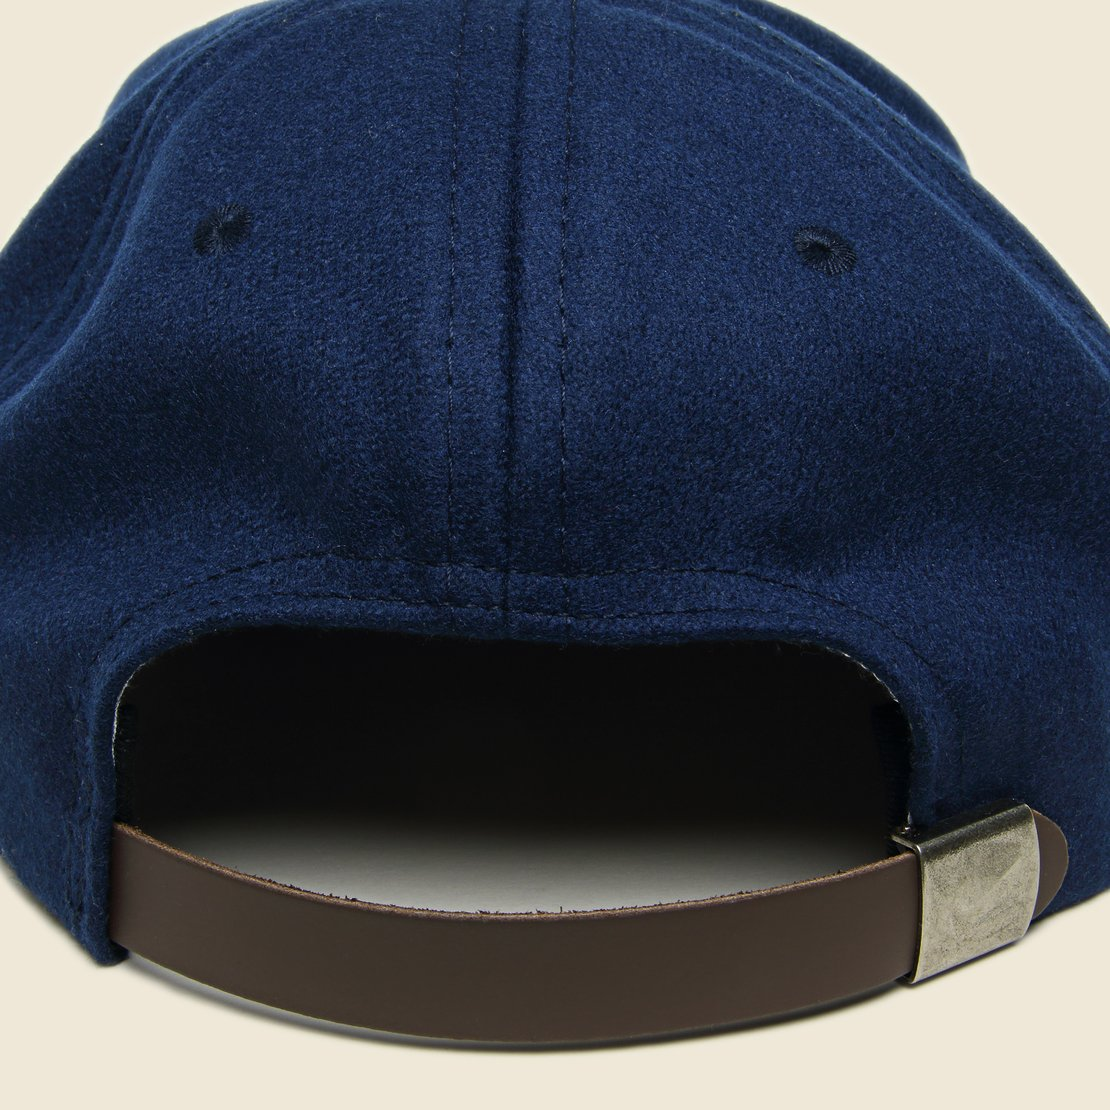 Houston Buffaloes Hat - Navy/Orange